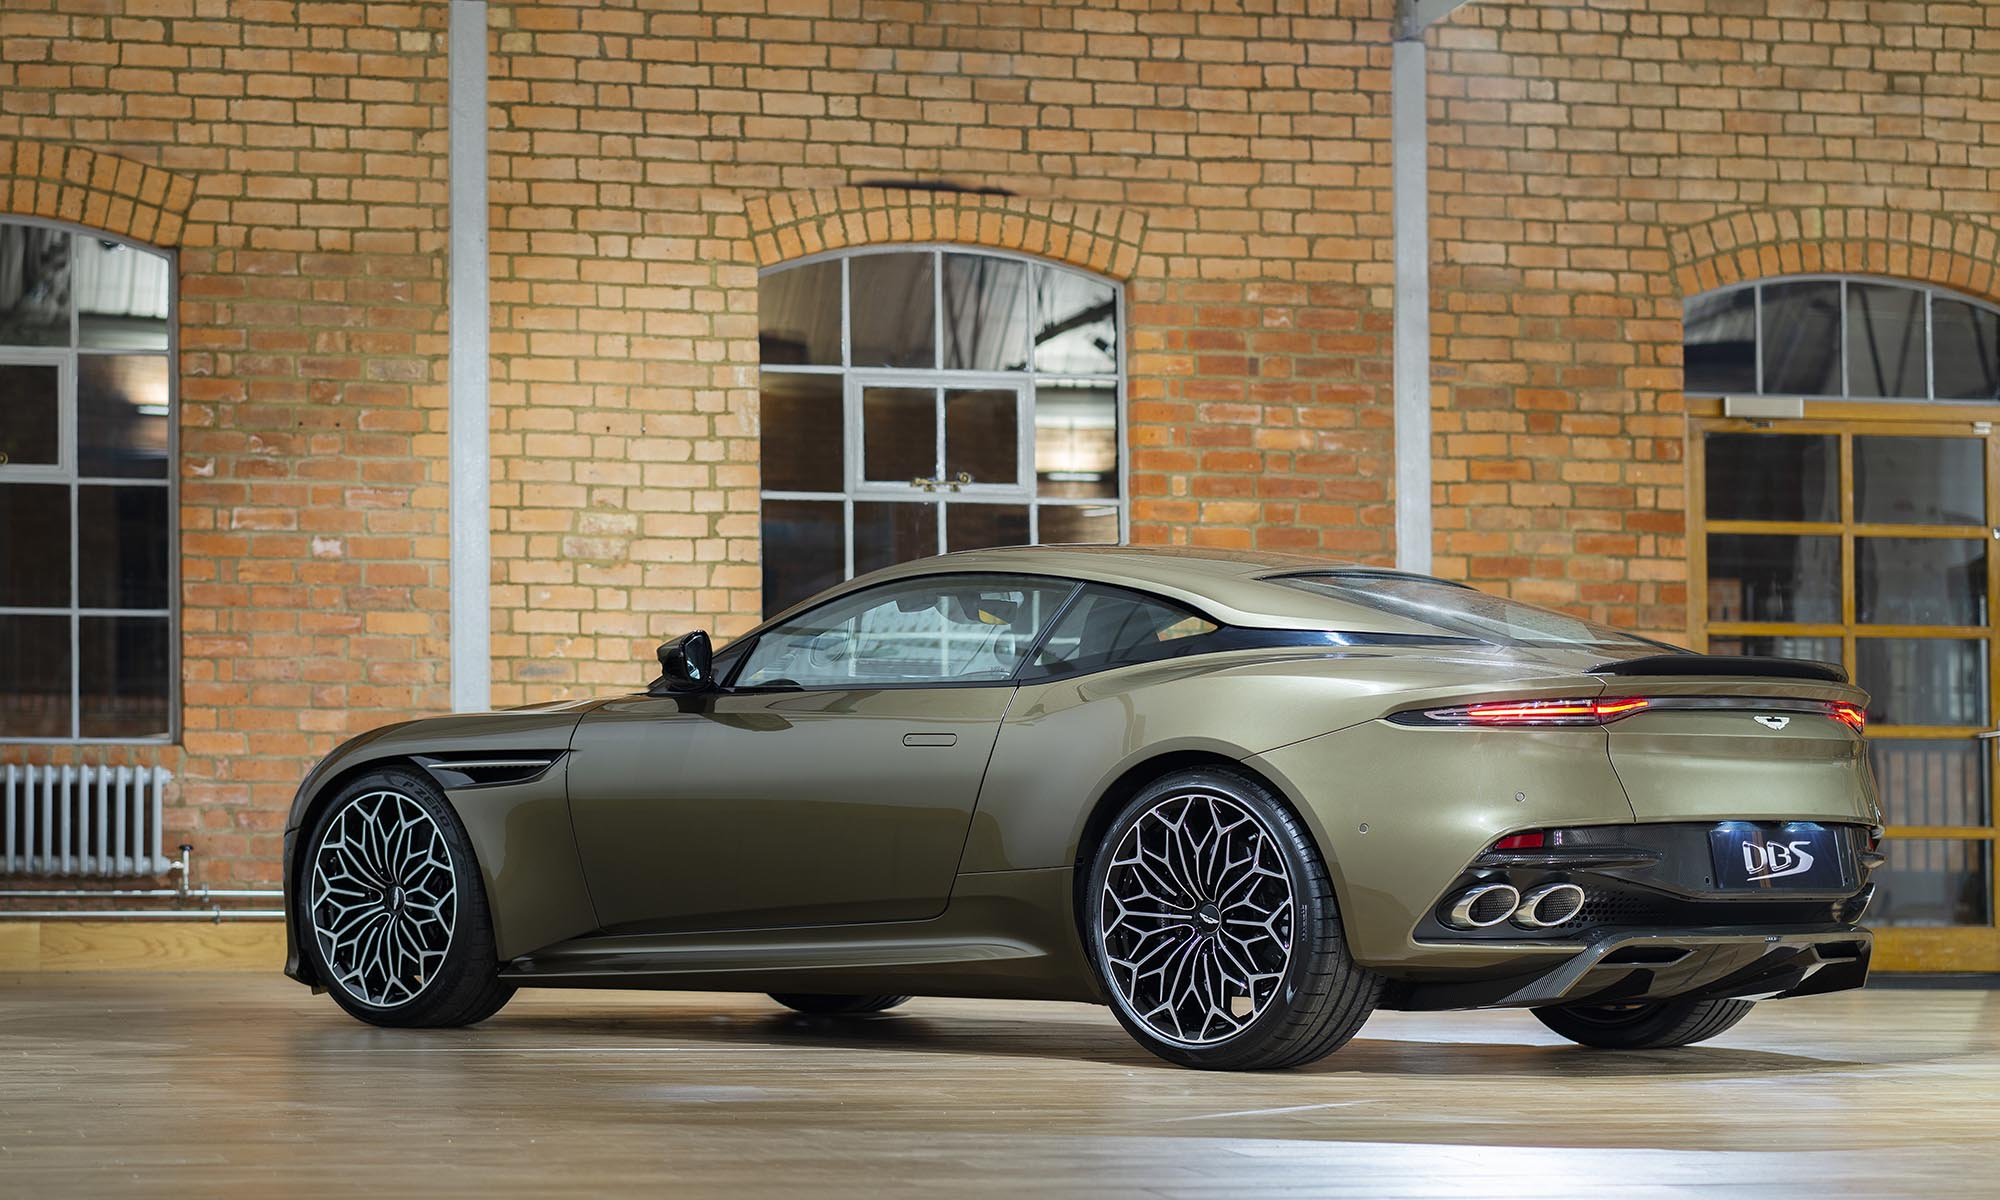 DBS Superleggera, Special Edition, Aston Martin, On Her Majesty's Secret Service, YouTube Video, photos, car, top car, fastest car, luxury car, black leather, seat, red edge, top movie, best movie, 007, James Bond, sports car,